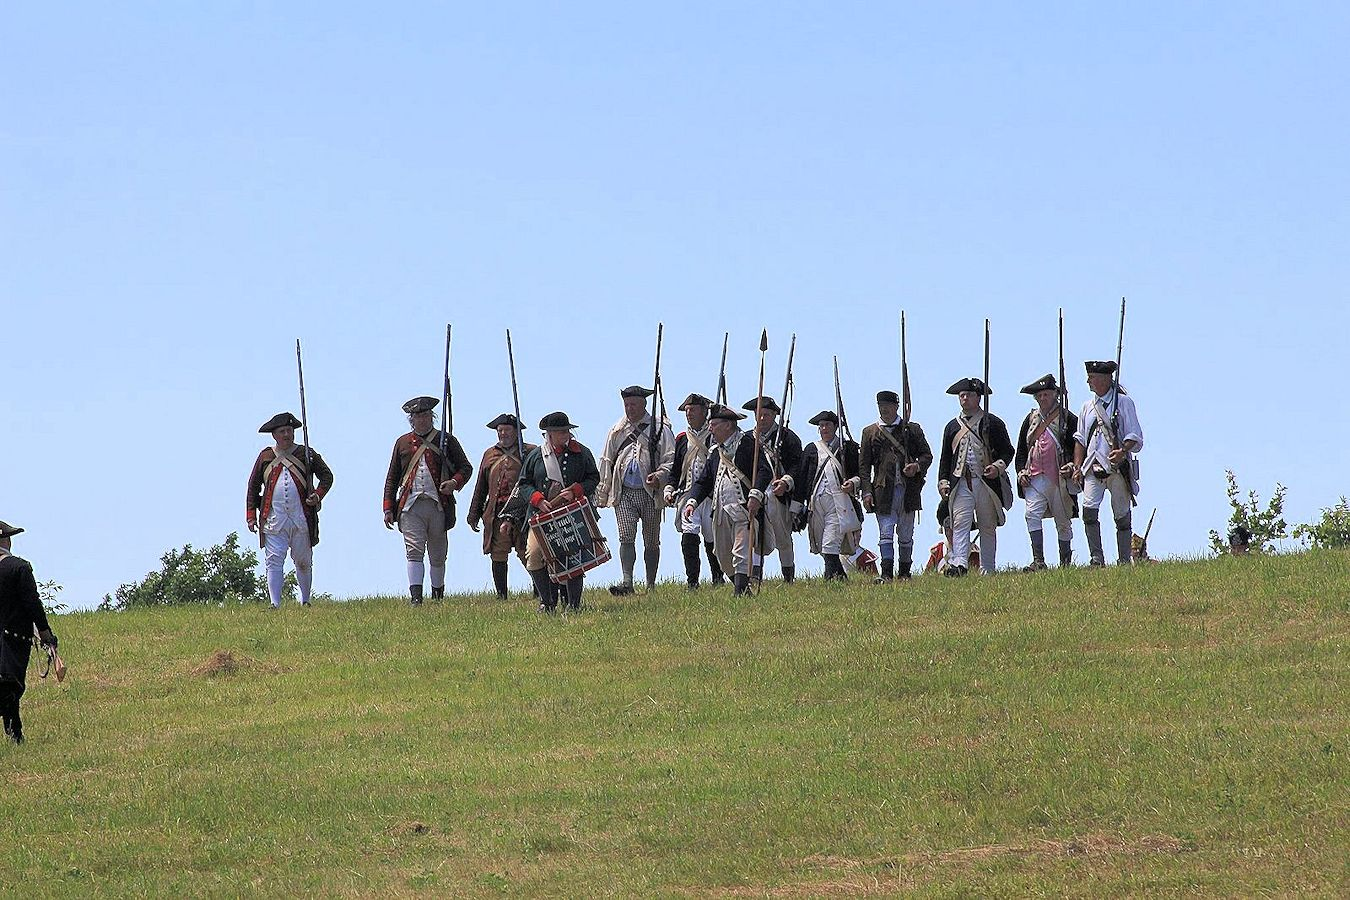 2019 Battle of Hubbardton Revolutionary War Encampment Weekend